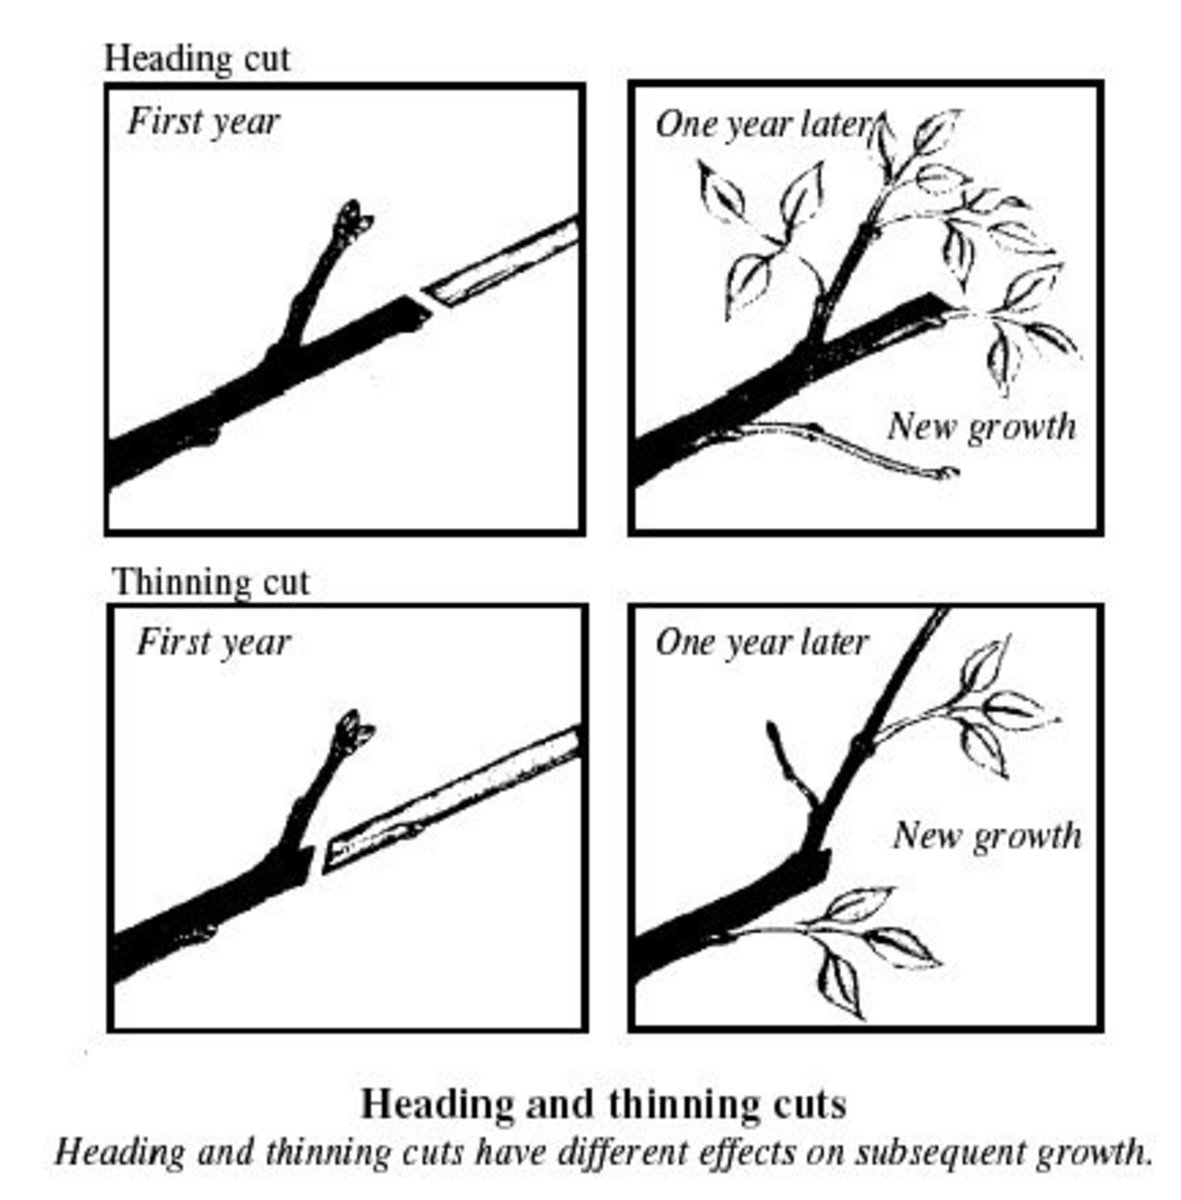 thinning and heading cuts compared